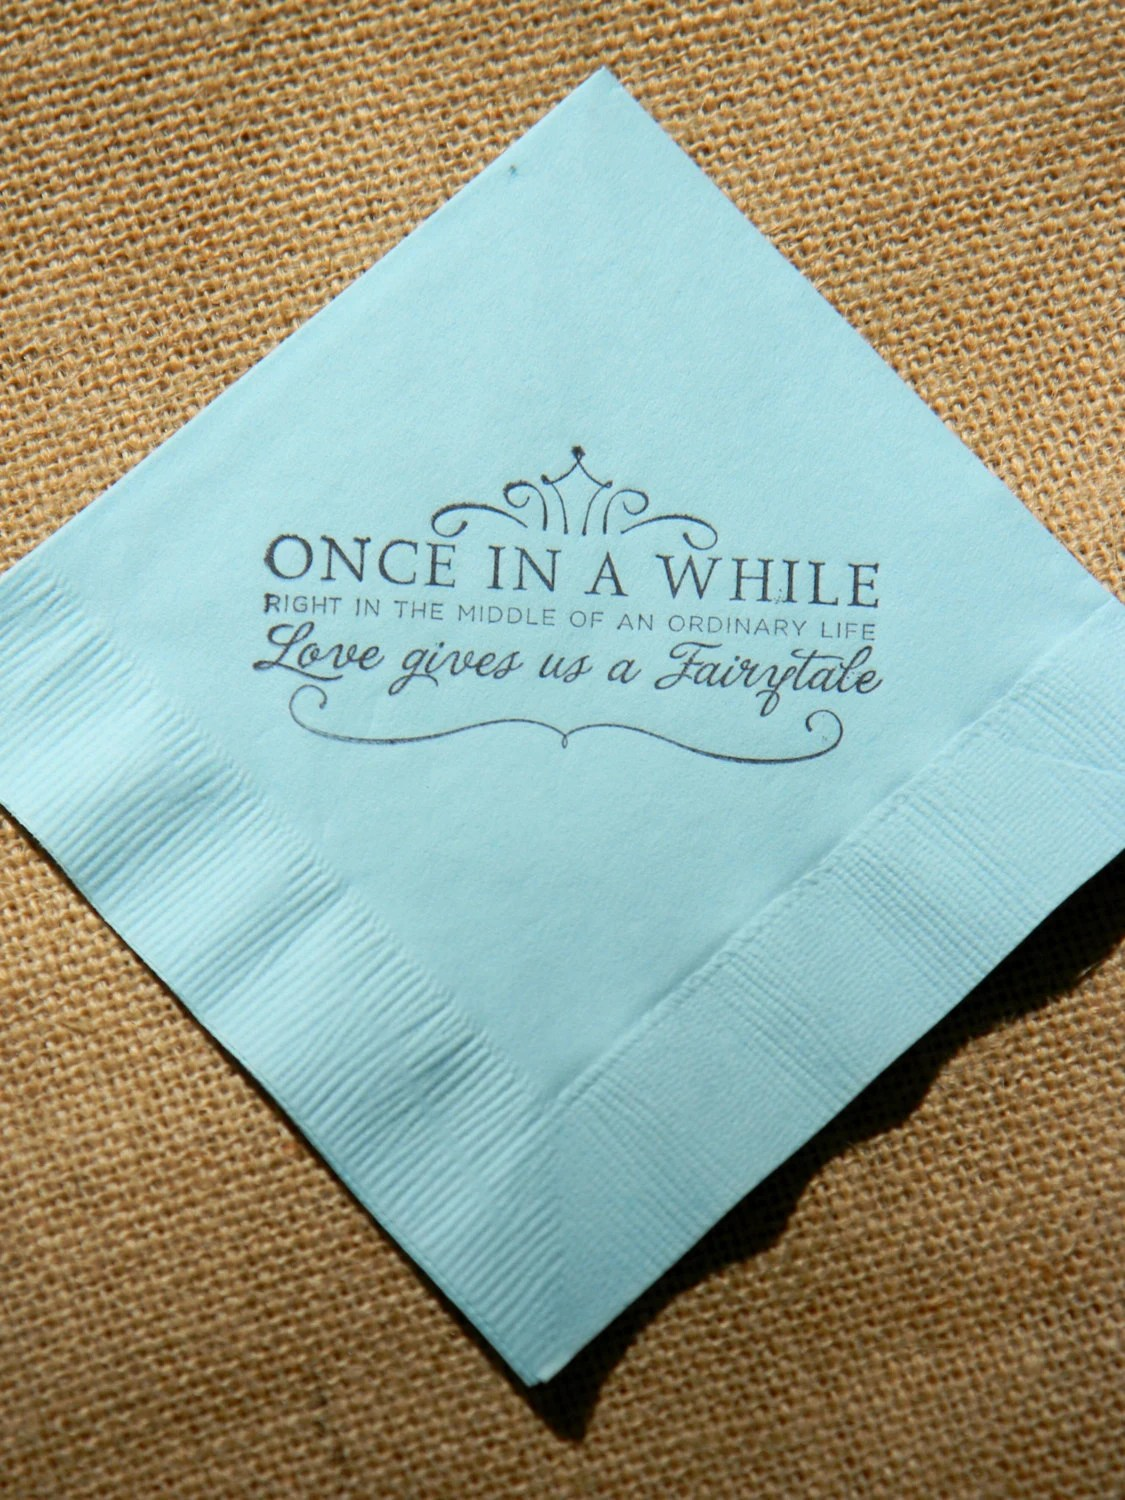 blue napkins napkins for wedding Fairytale Love Light Blue Paper Wedding Cocktail Napkins Once in a While Crown Stamped Set of 50